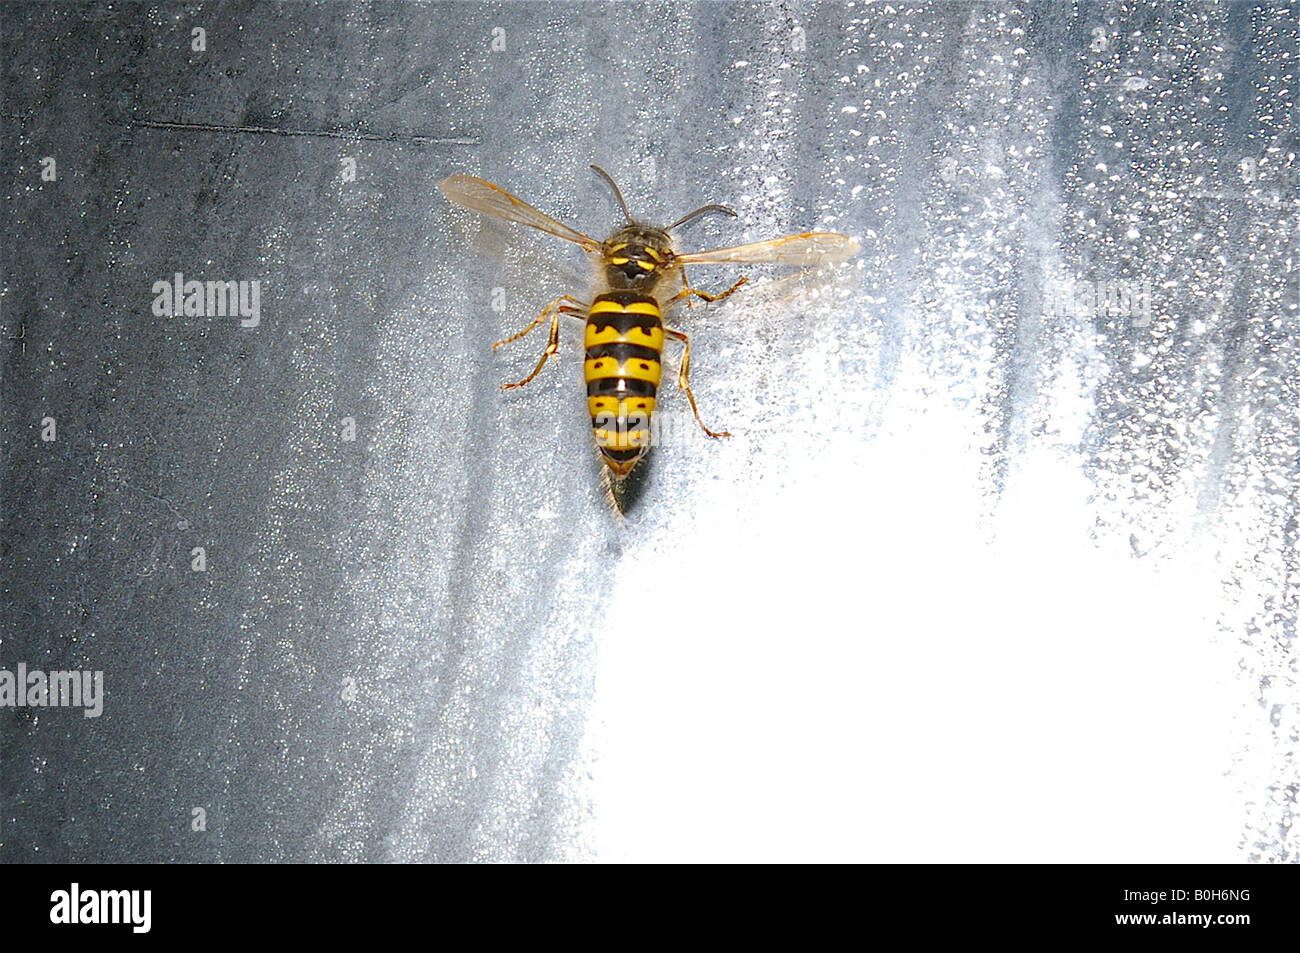 Bee On A Window Stock Photos & Bee On A Window Stock Images - Alamy